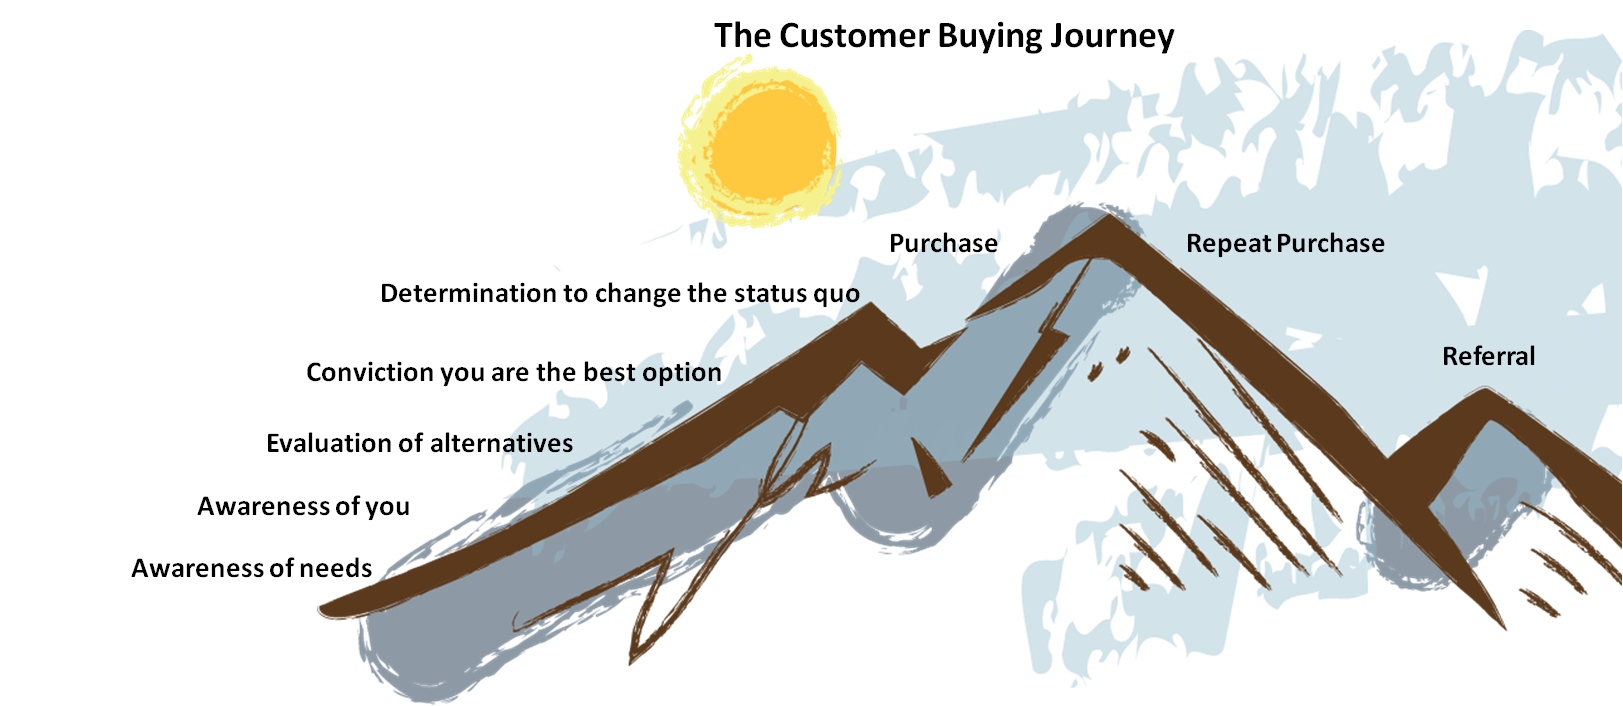 Customer path from awareness to purchase to referrals